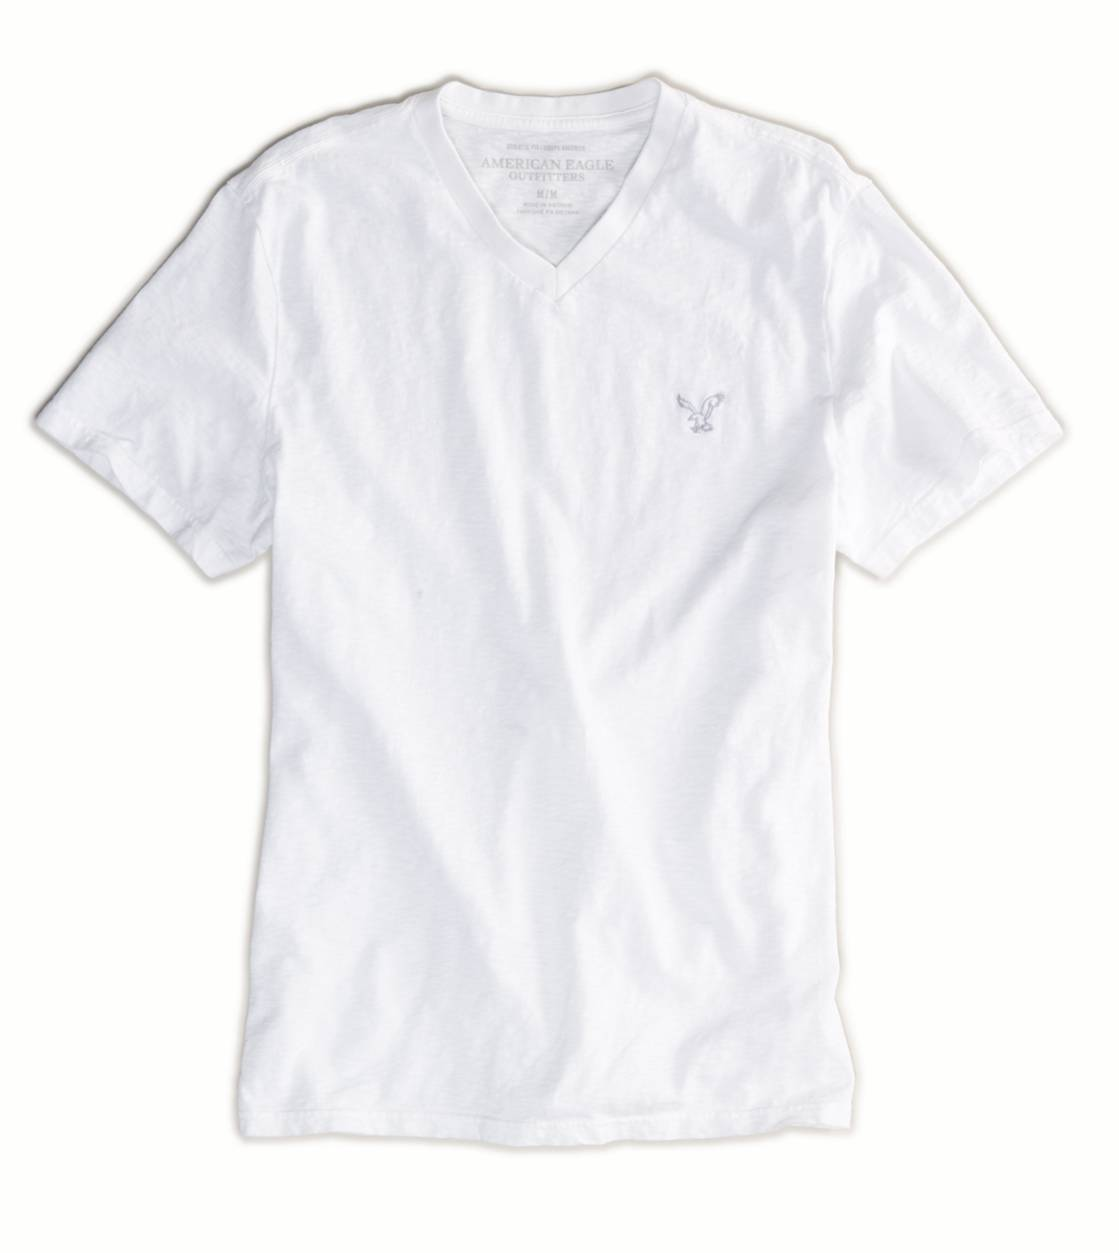 White  AE Legend V-Neck T-Shirt